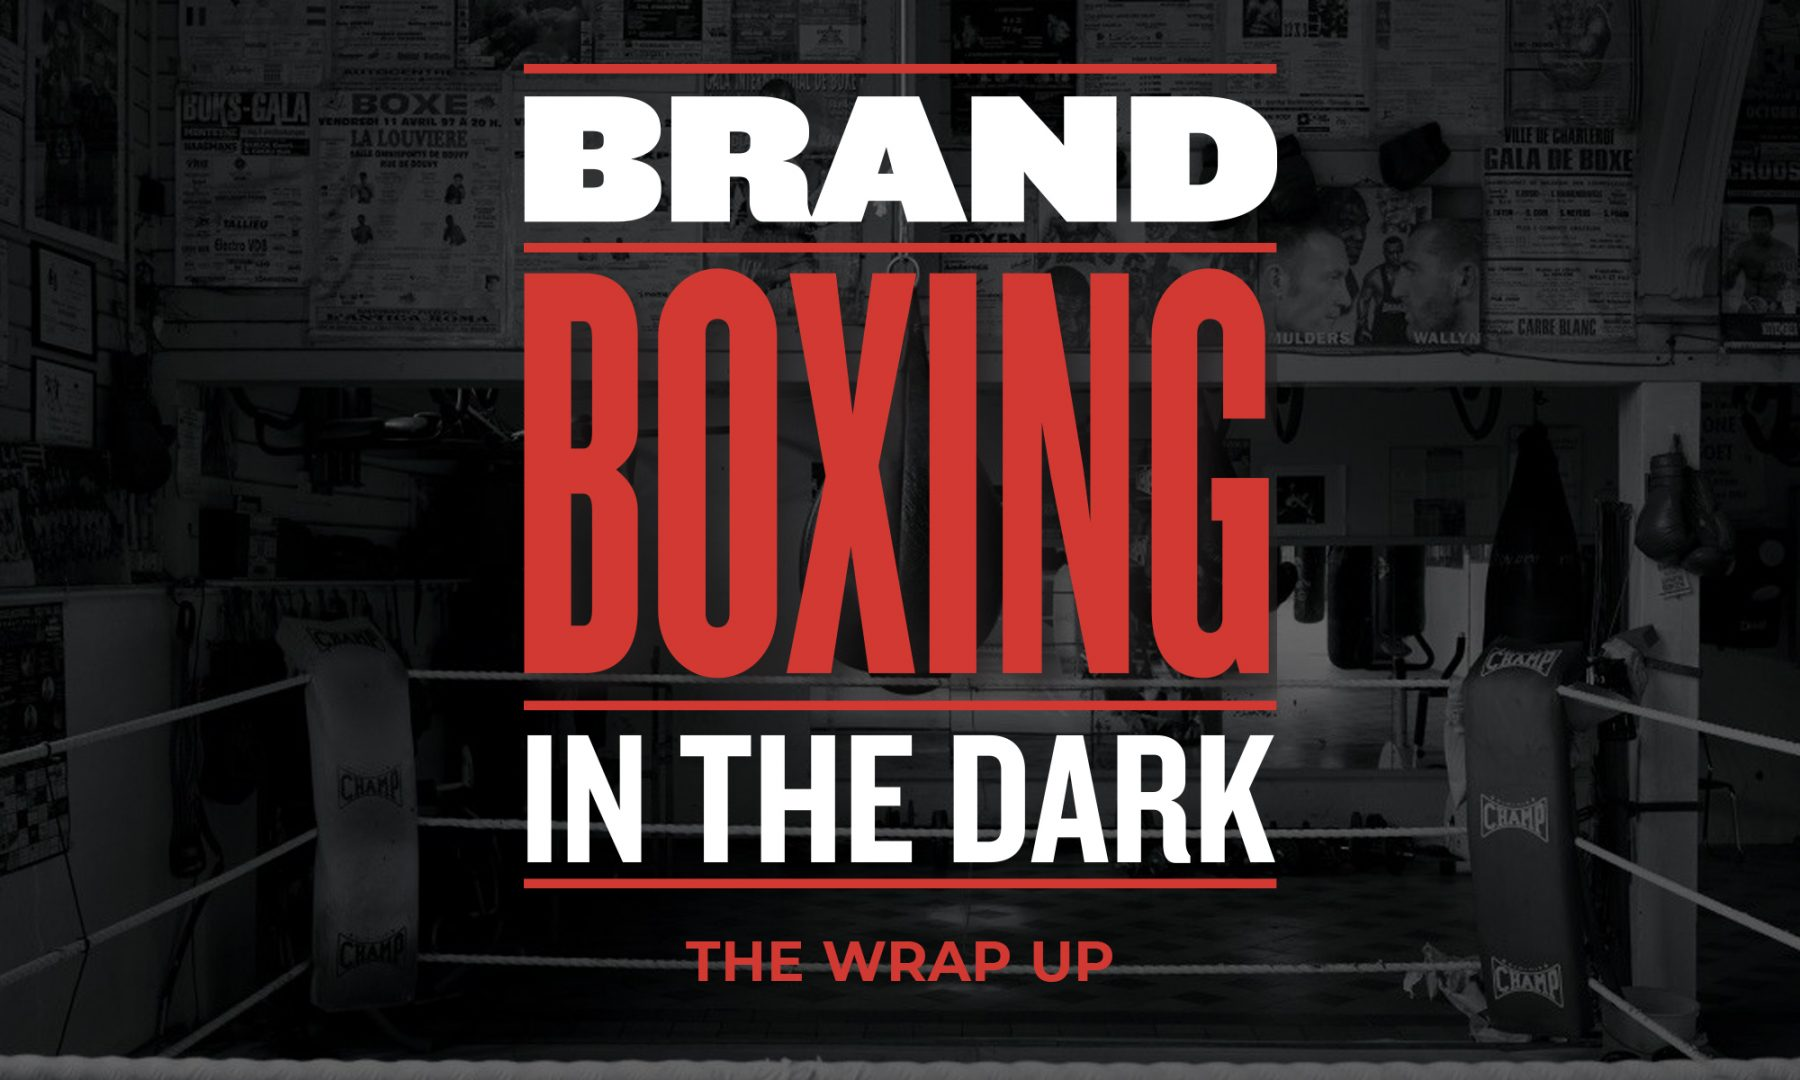 Brand Boxing in the Dark - The wrap up